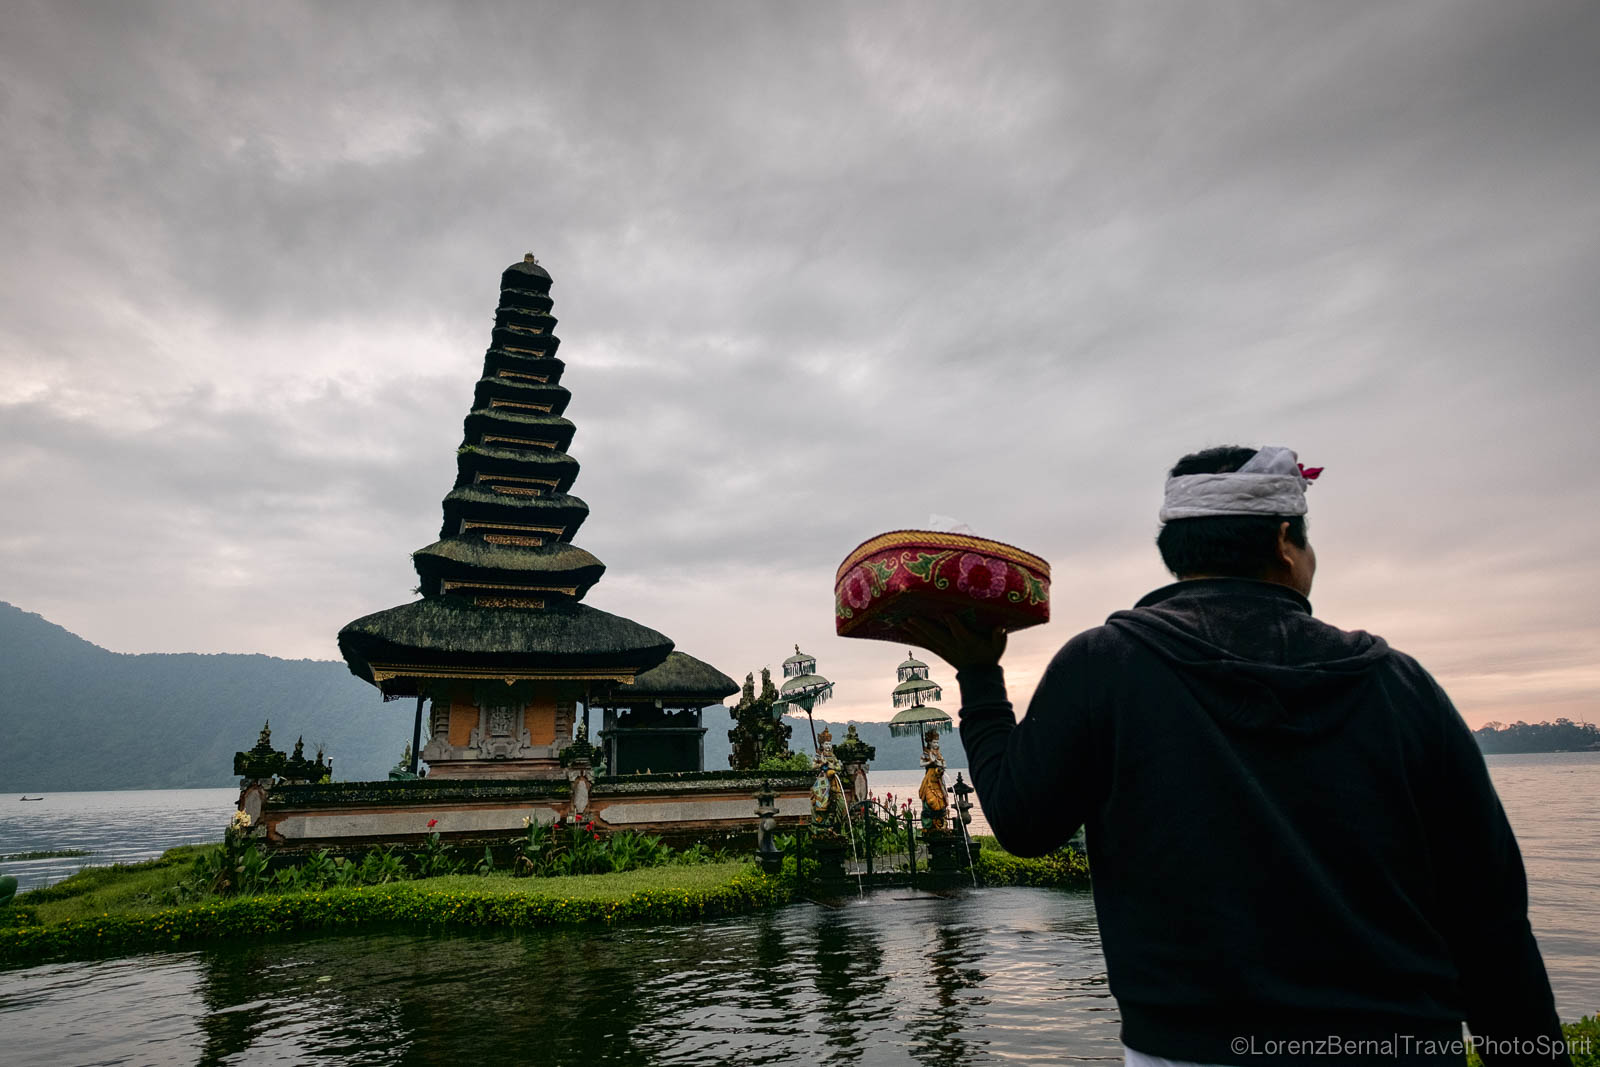 Man with an offering tray at the Pura Ulun Danu Bratan temple, on the Danau Bratan Lake, North Bali, Indonesia.